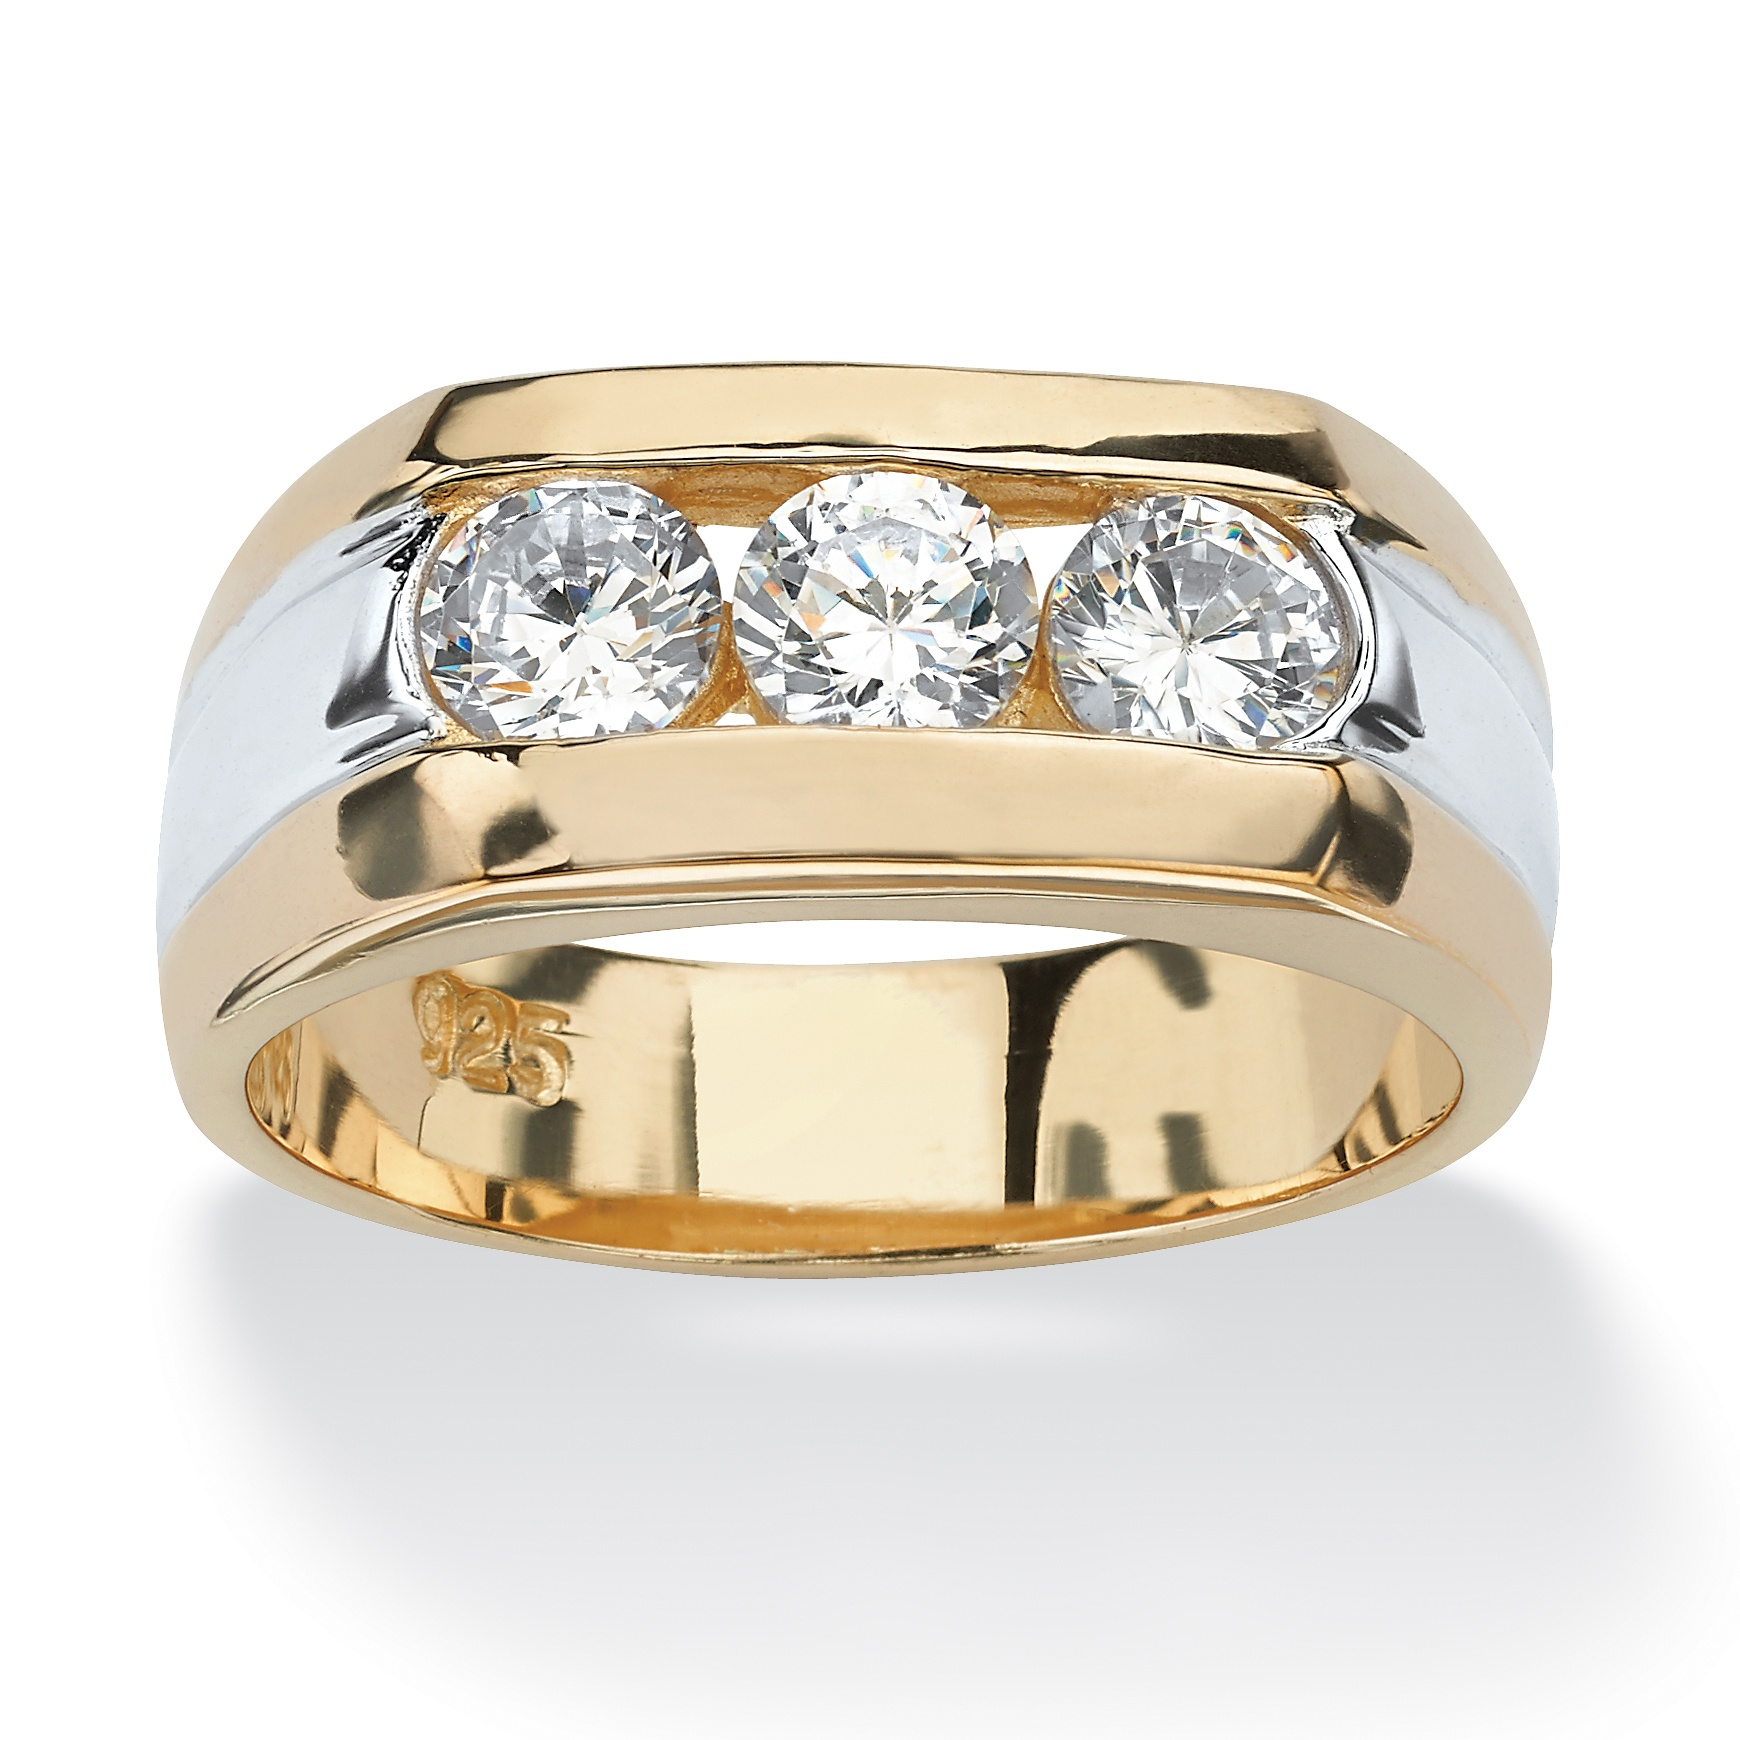 Find designer diamond engagement rings in unique styles & settings at Ritani. Design your custom engagement ring online today directly from the official Ritani site.